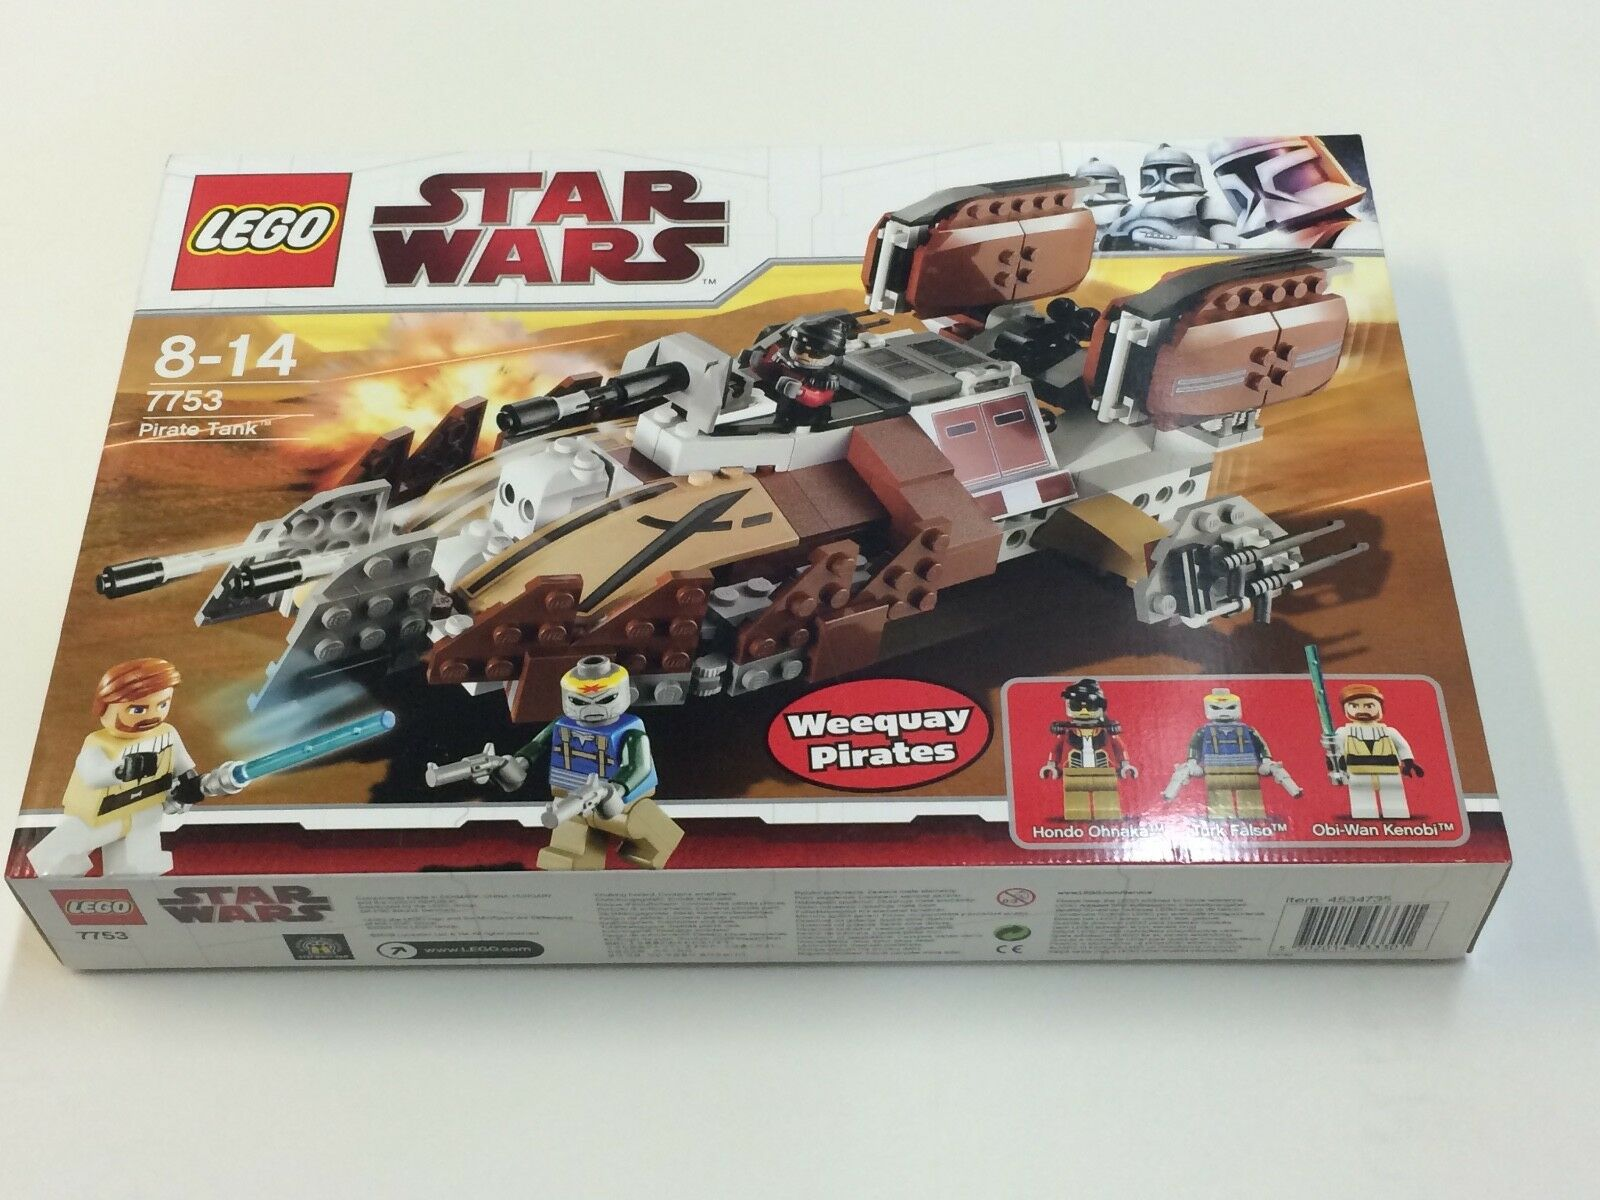 New Sealed LEGO Star Wars 7753 -  Pirate Tank Discontinued